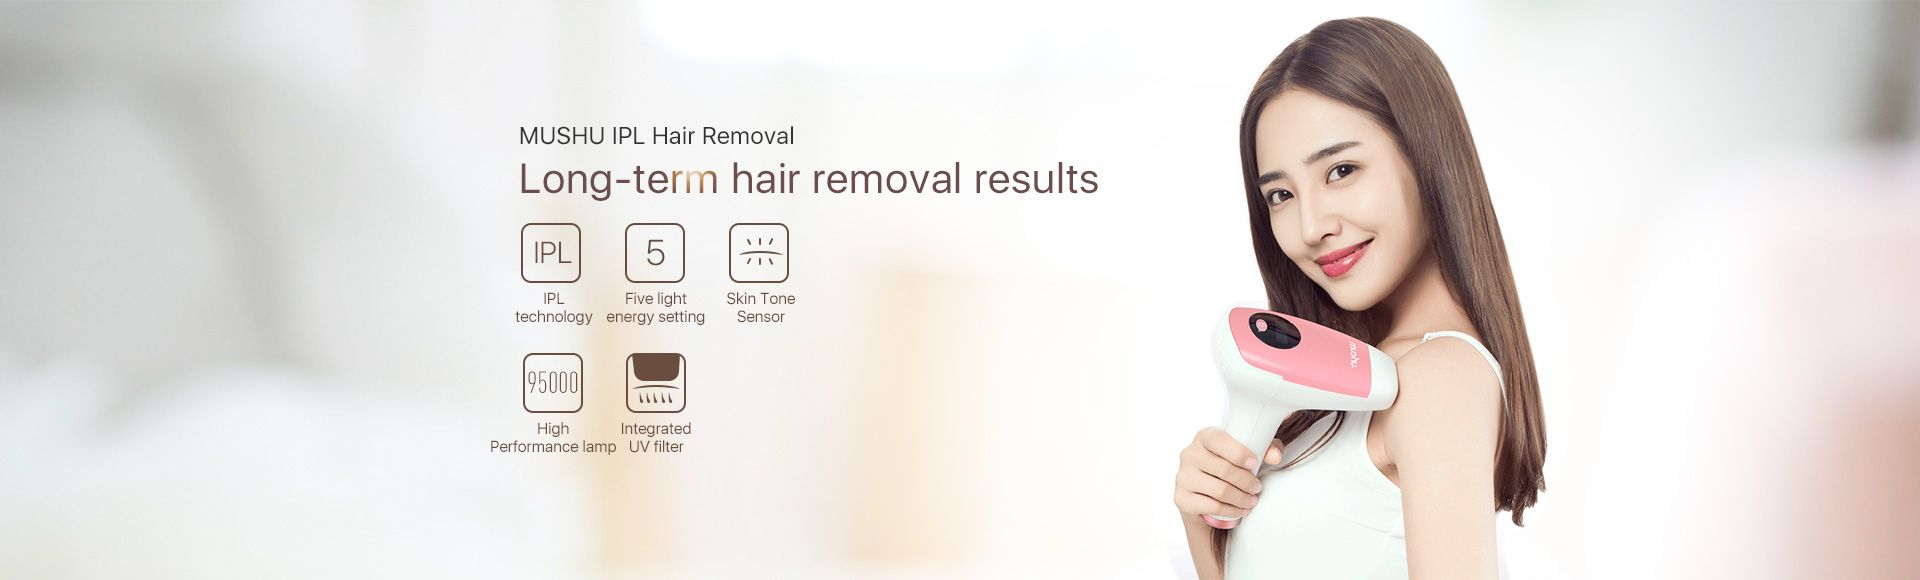 MUSHU IPL Removal - Long-term Hair Removal Results 95000 Flashes